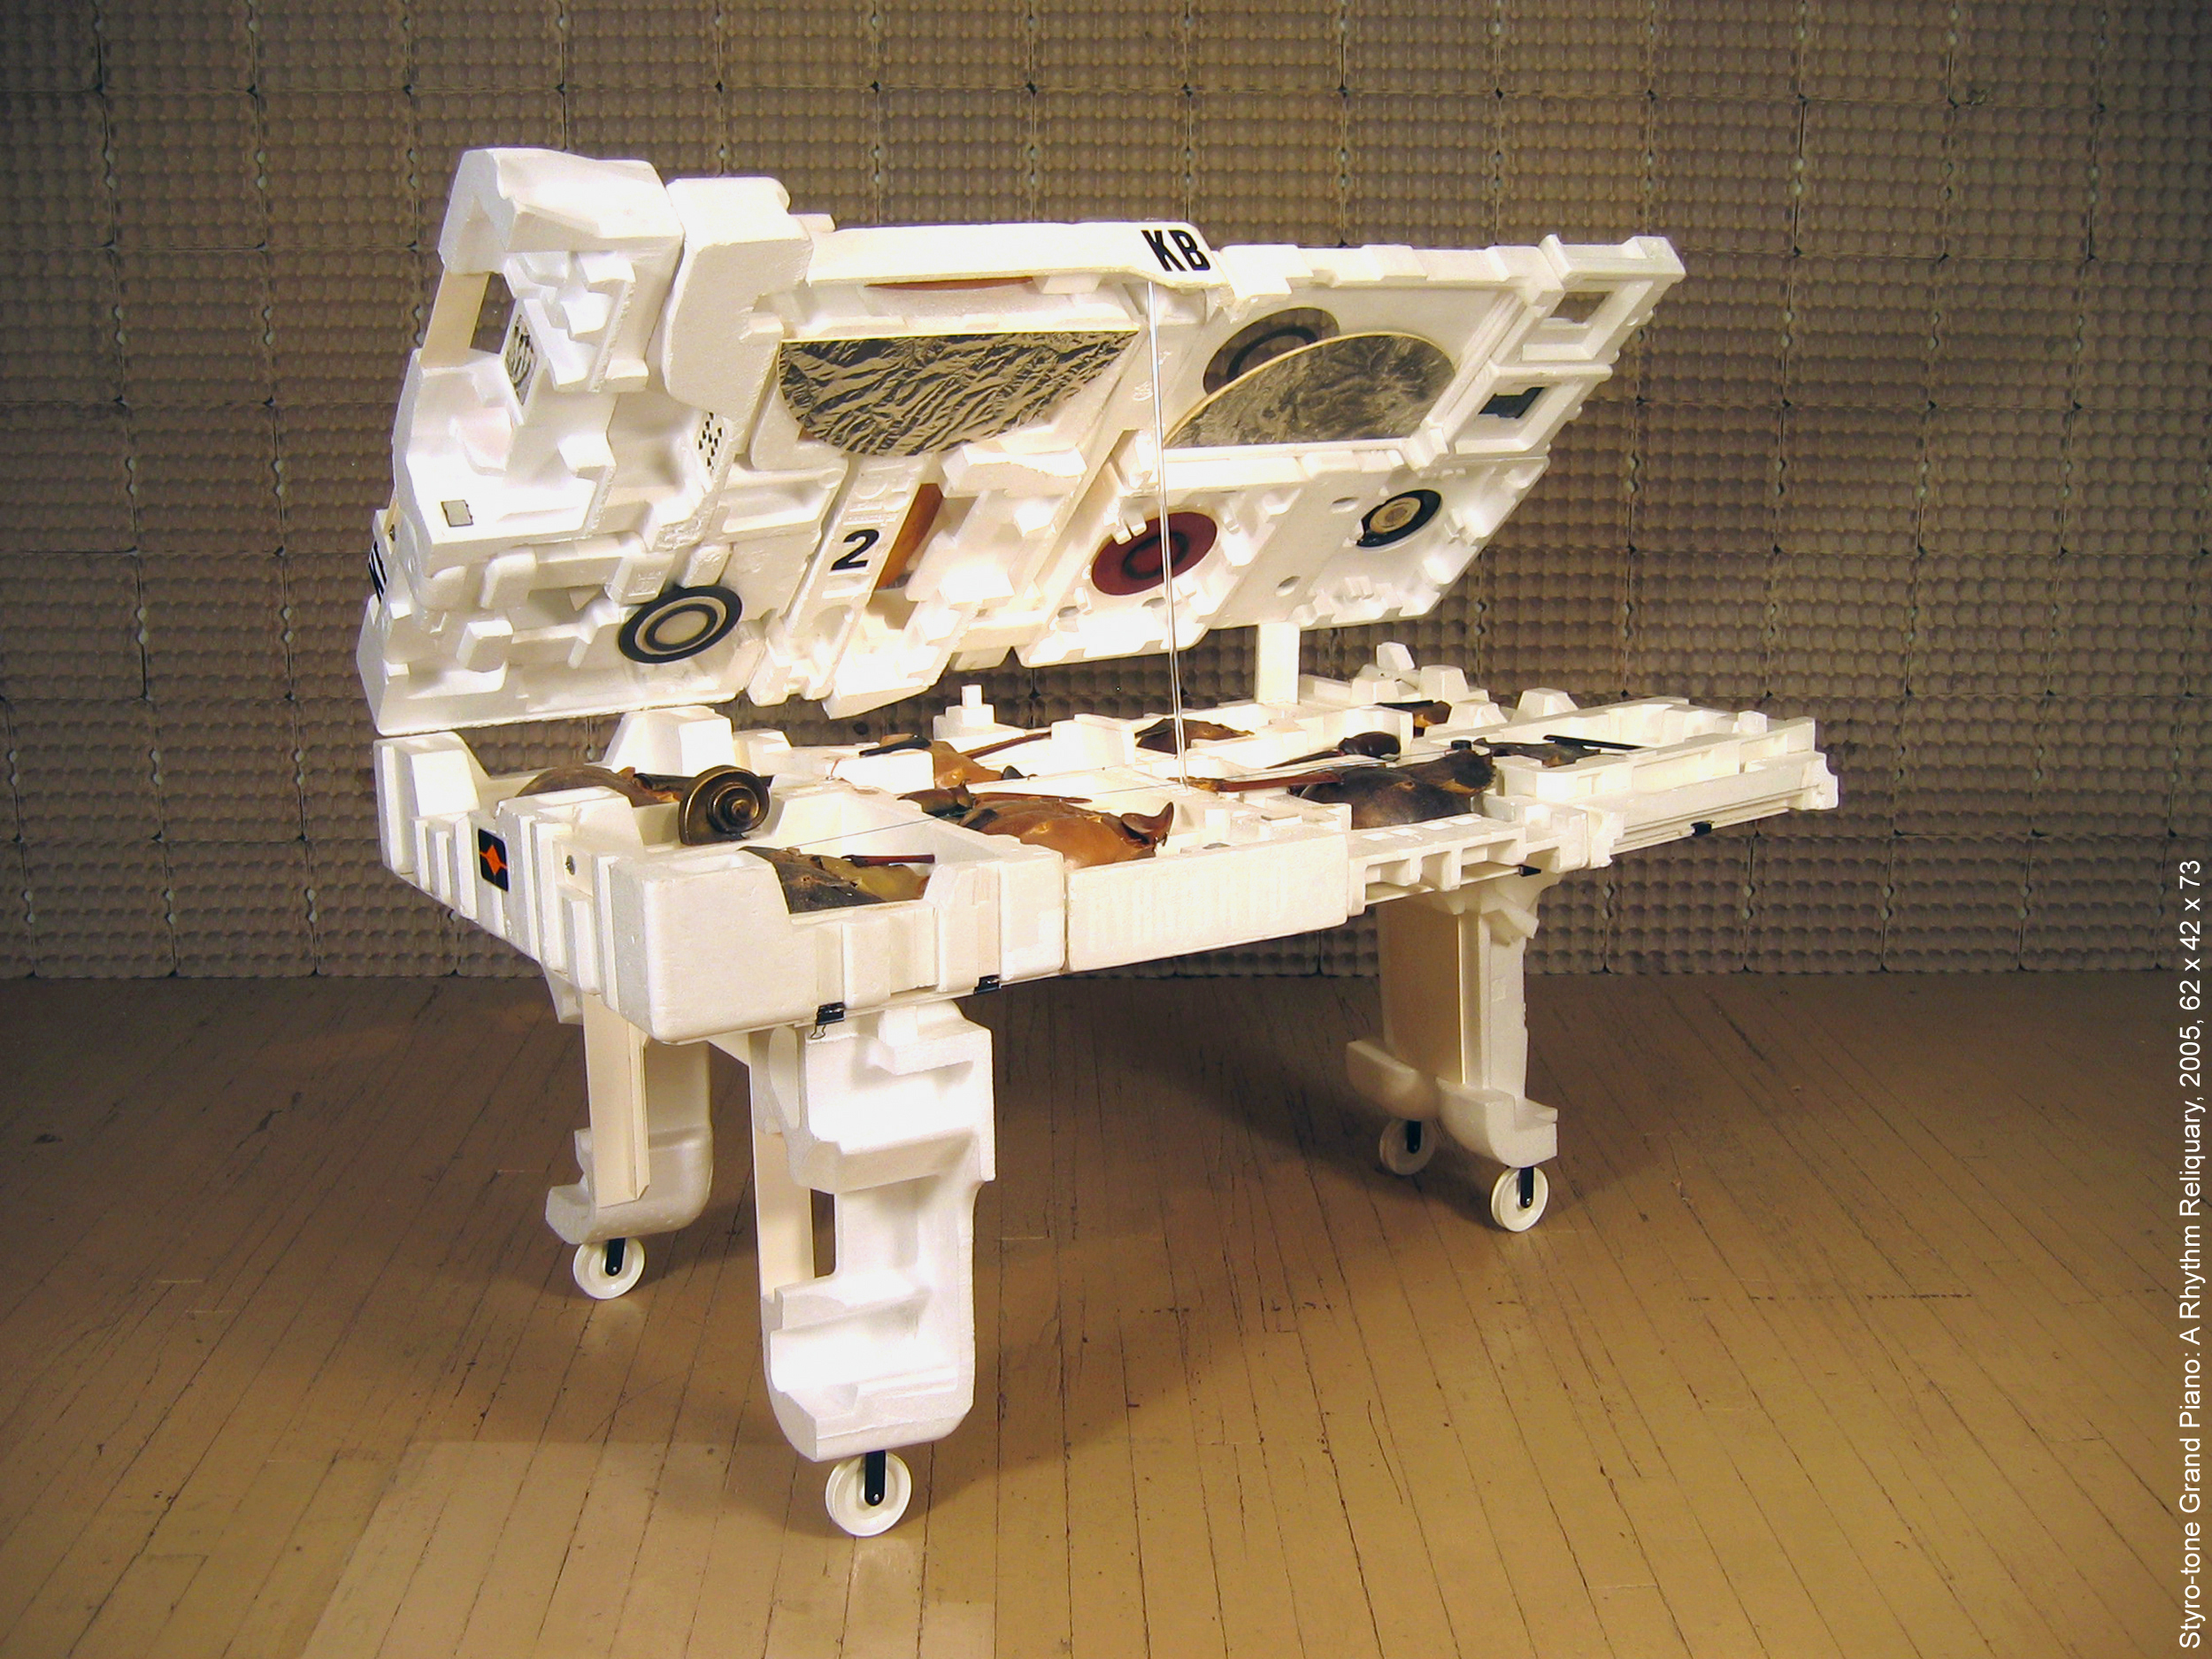 'Styro-tone Grand Piano: a Rhythm Reliquary' , 2005, 62 x 42 x 73 (with top open). Made from street-found Styrofoam containers and other detritus, the sculpture plays with the idea of reliquaries (sacred objects) presented in a kind of natural history museum environment, referencing a cabinet of curiosities. Constructions of horseshoe shell crabs, insects, violin parts, and other found objects reflect the iconography of string instruments. The lightness of the material makes it very portable, and although playable as a percussion instrument (amplified with multiple transducers), it is predominantly a visual piece with only one string and no keyboard.